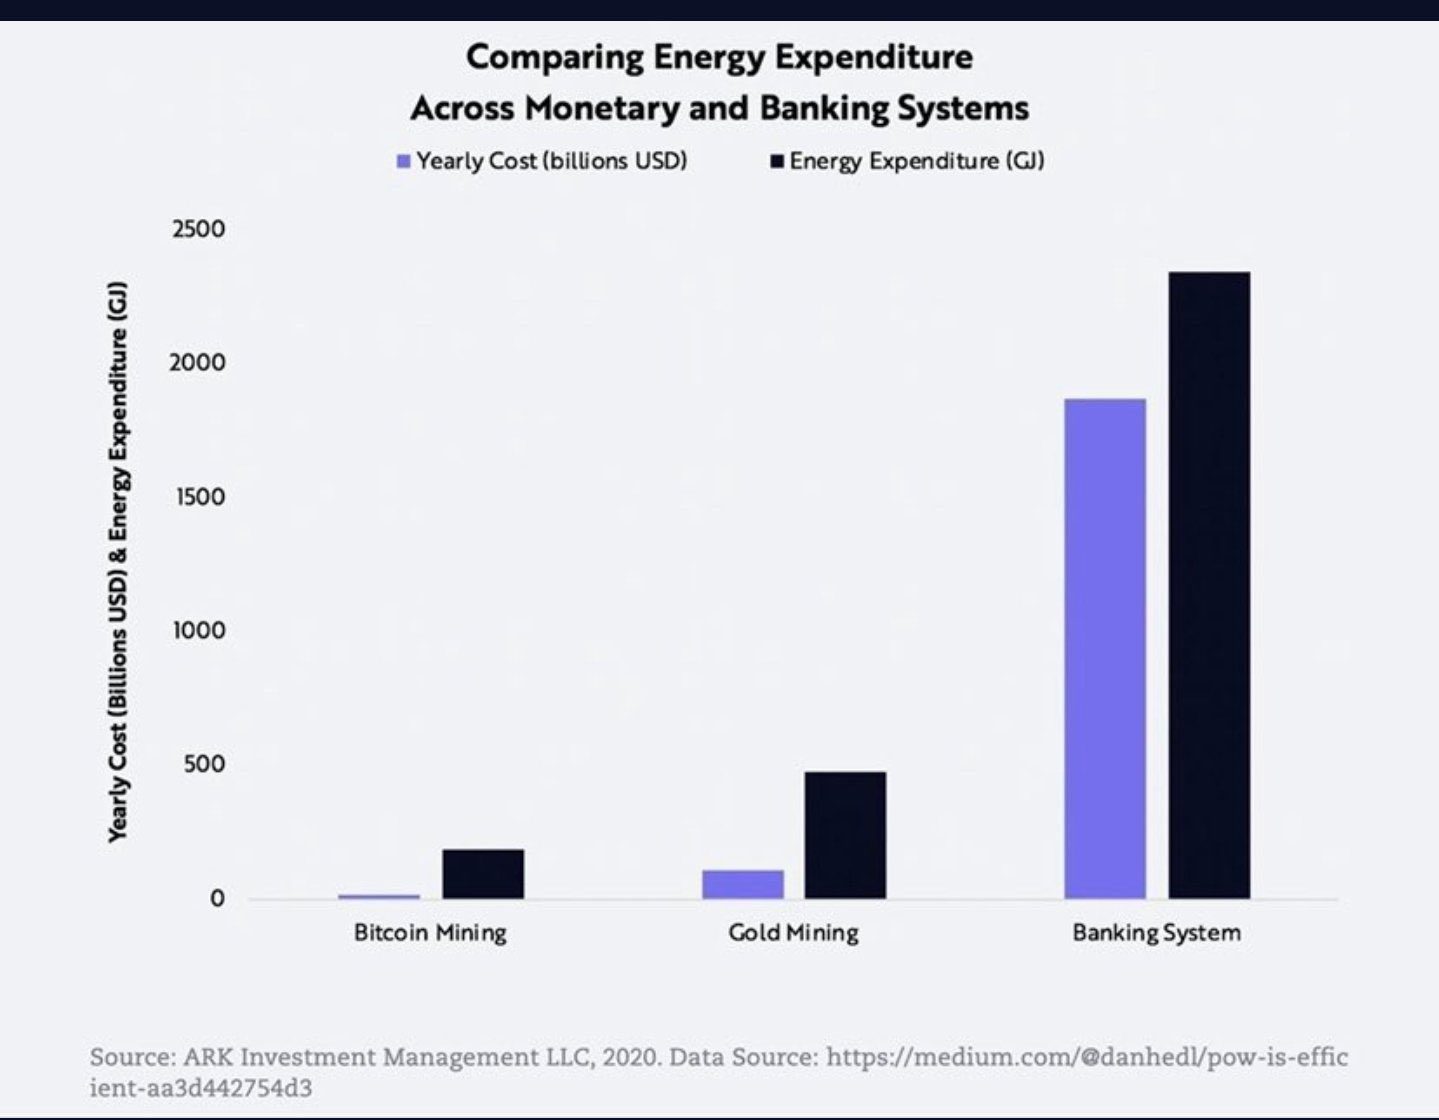 Comparing Energy Expenditure